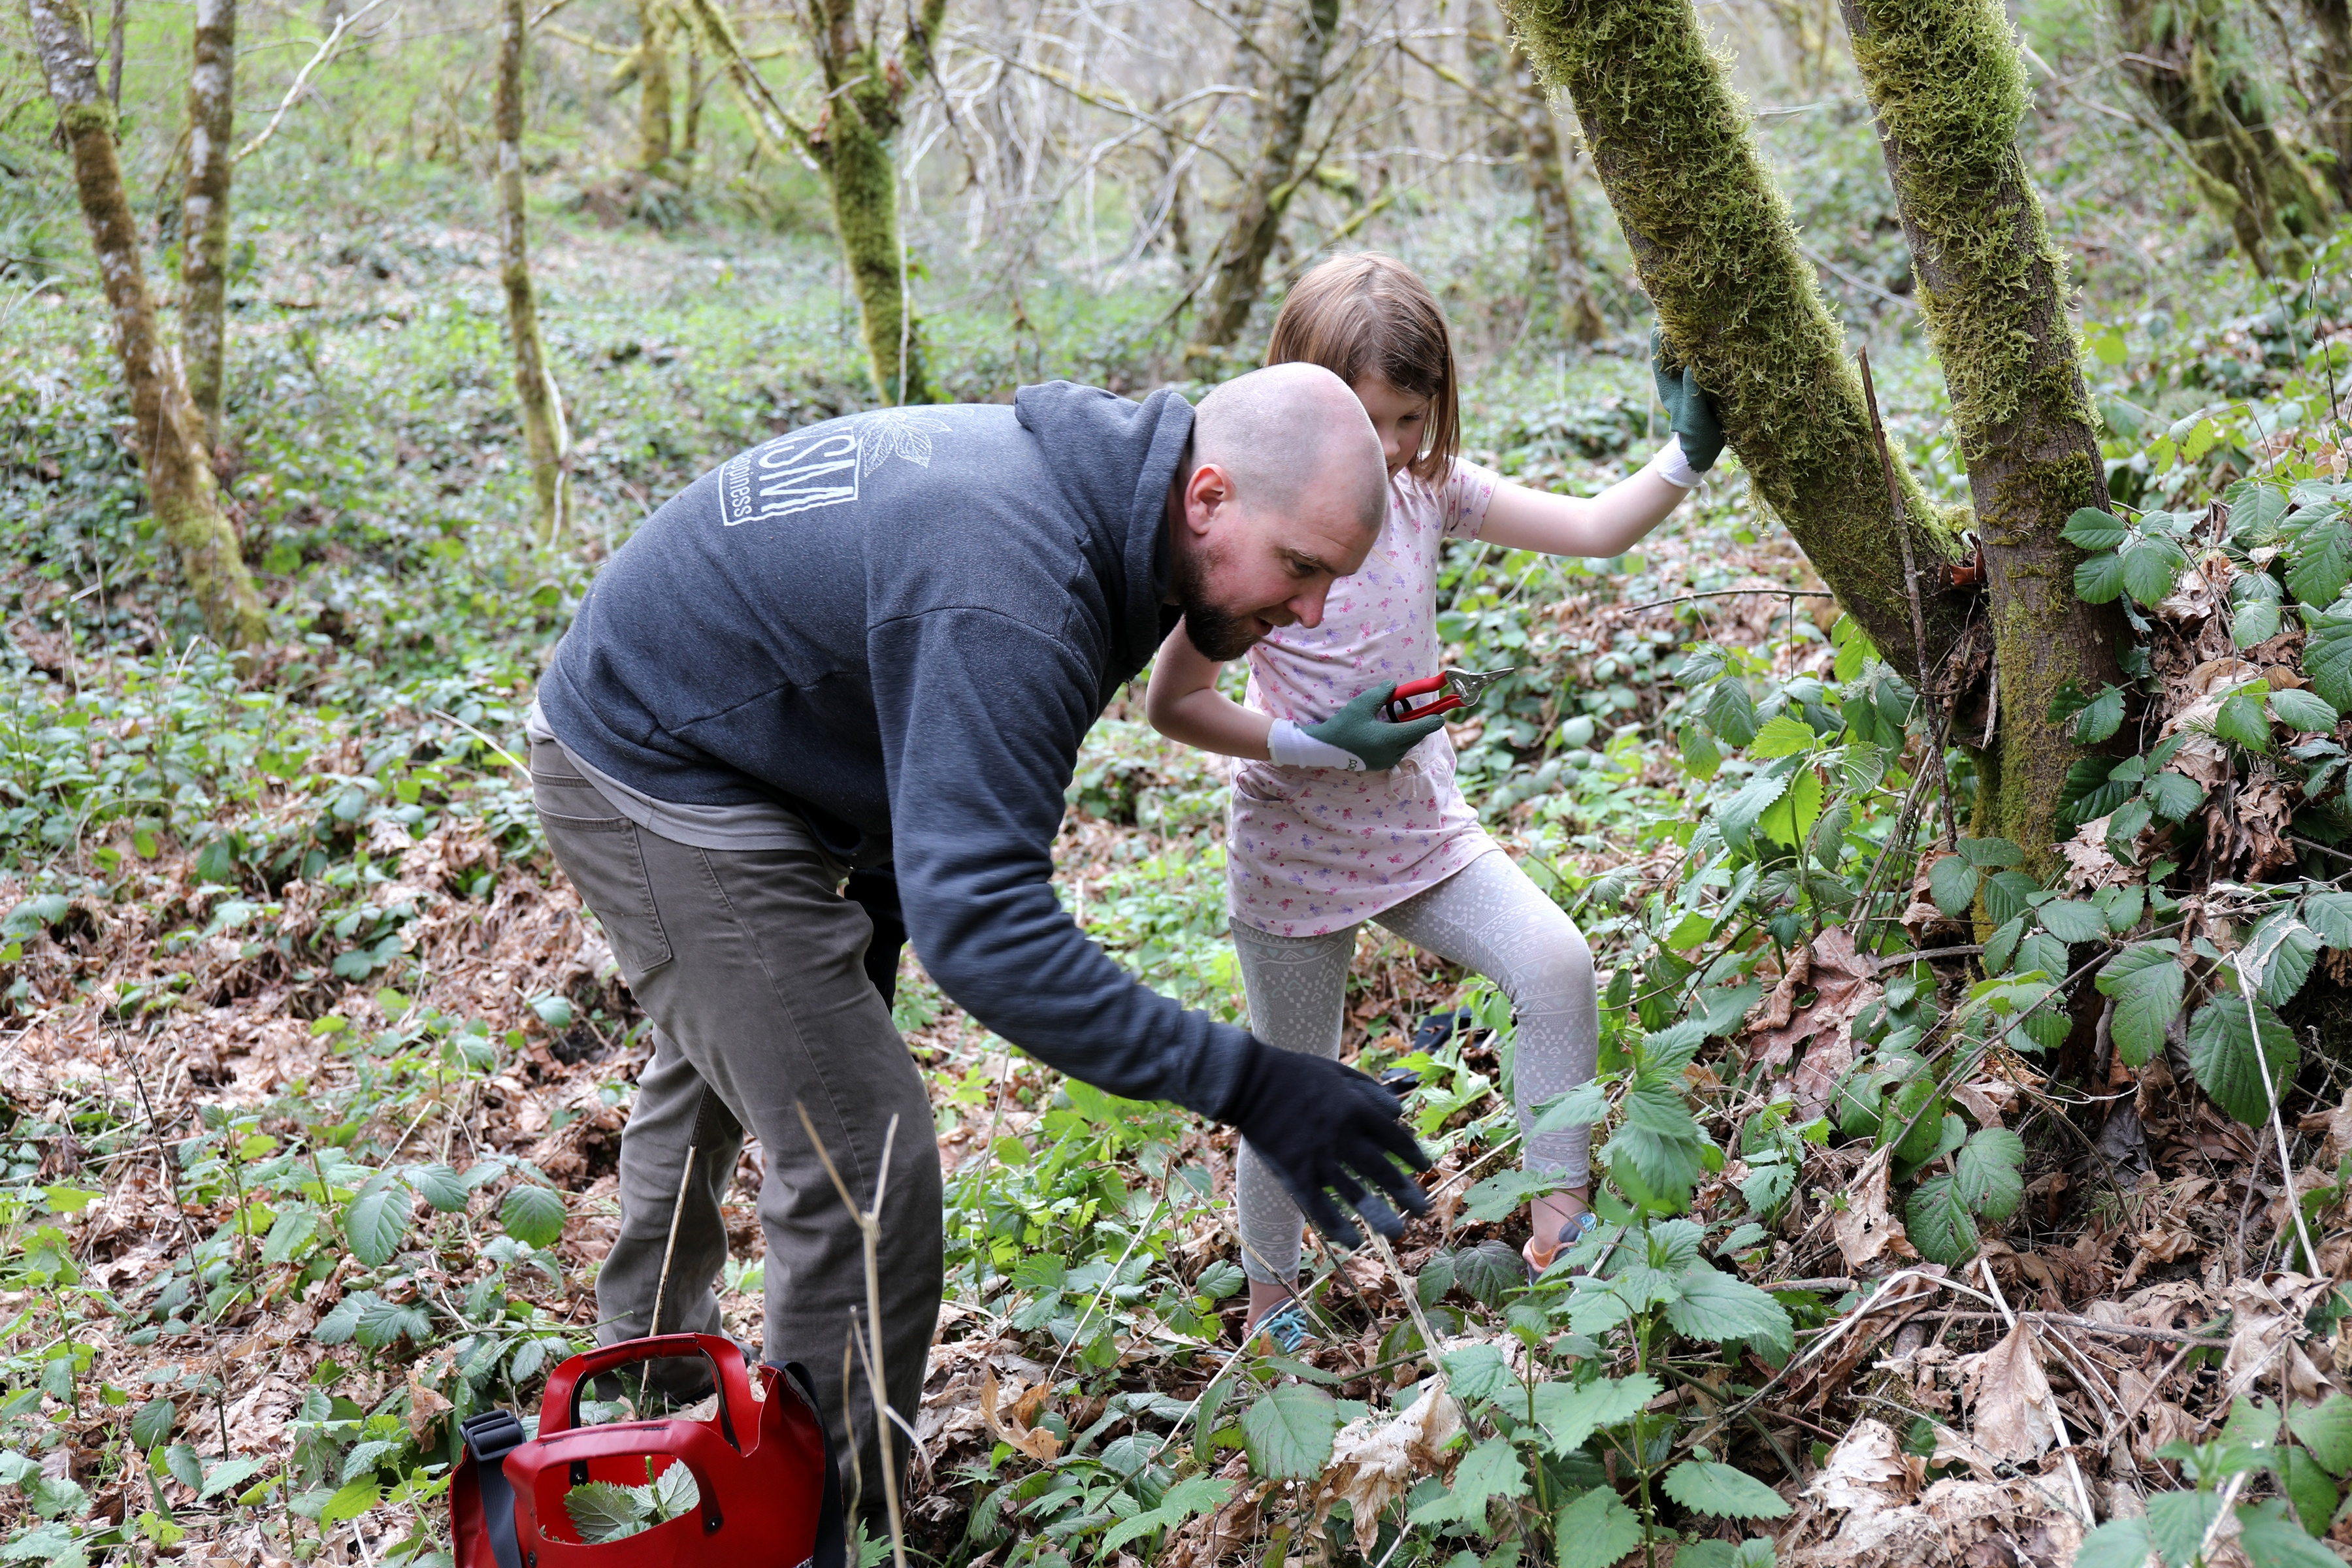 Our employee Mason shows his daughter how to harvest stinging nettle without getting stung in the woods near Eugene, Oregon